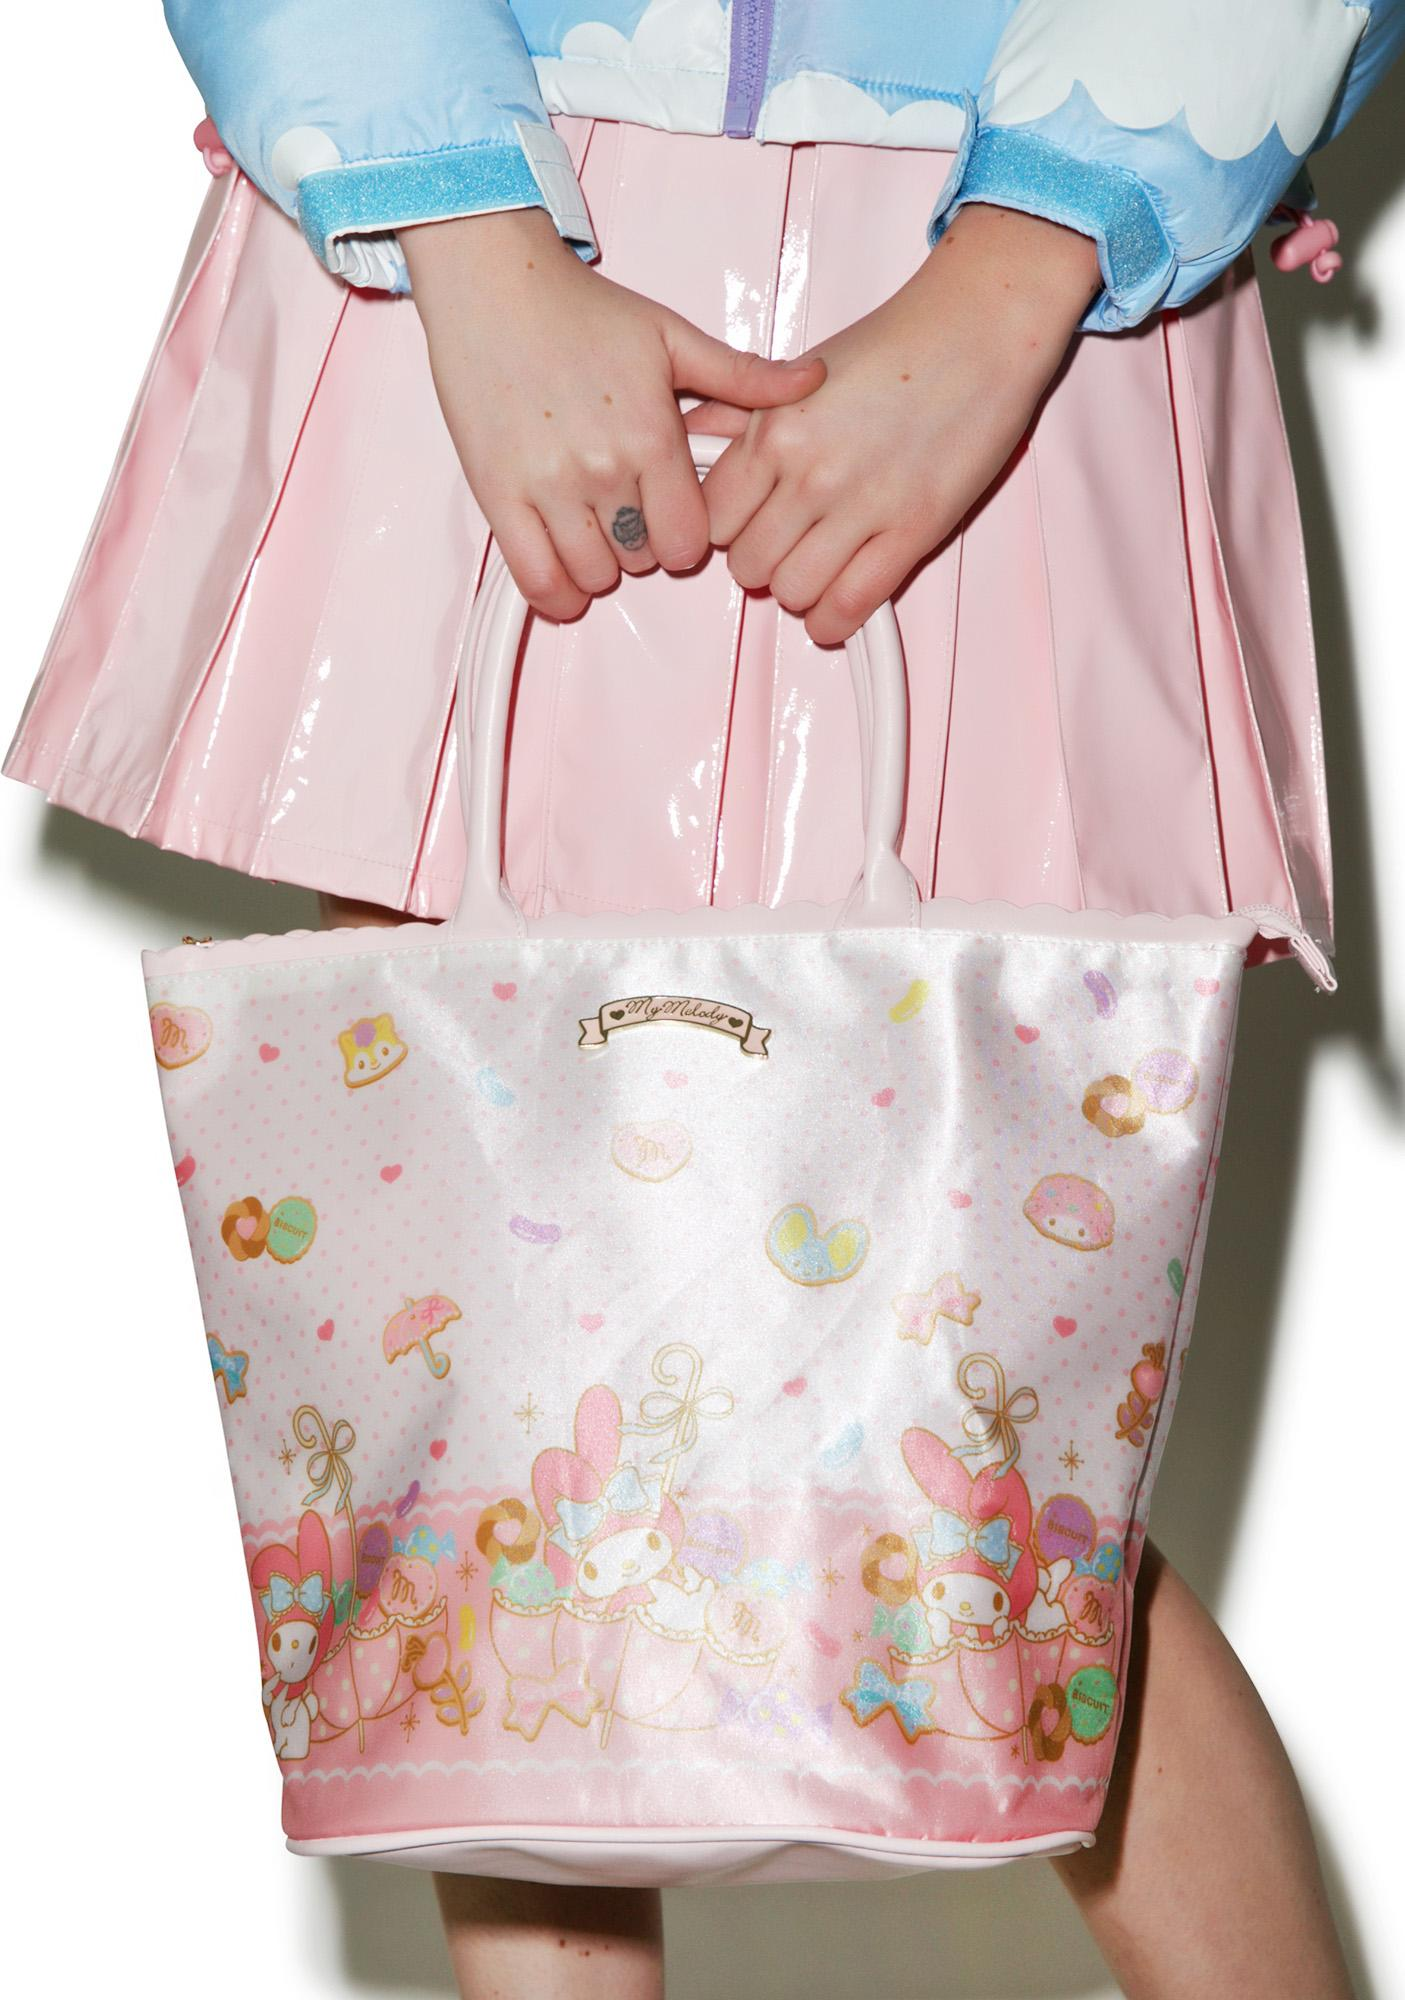 Sanrio My Melody Cookie Tote